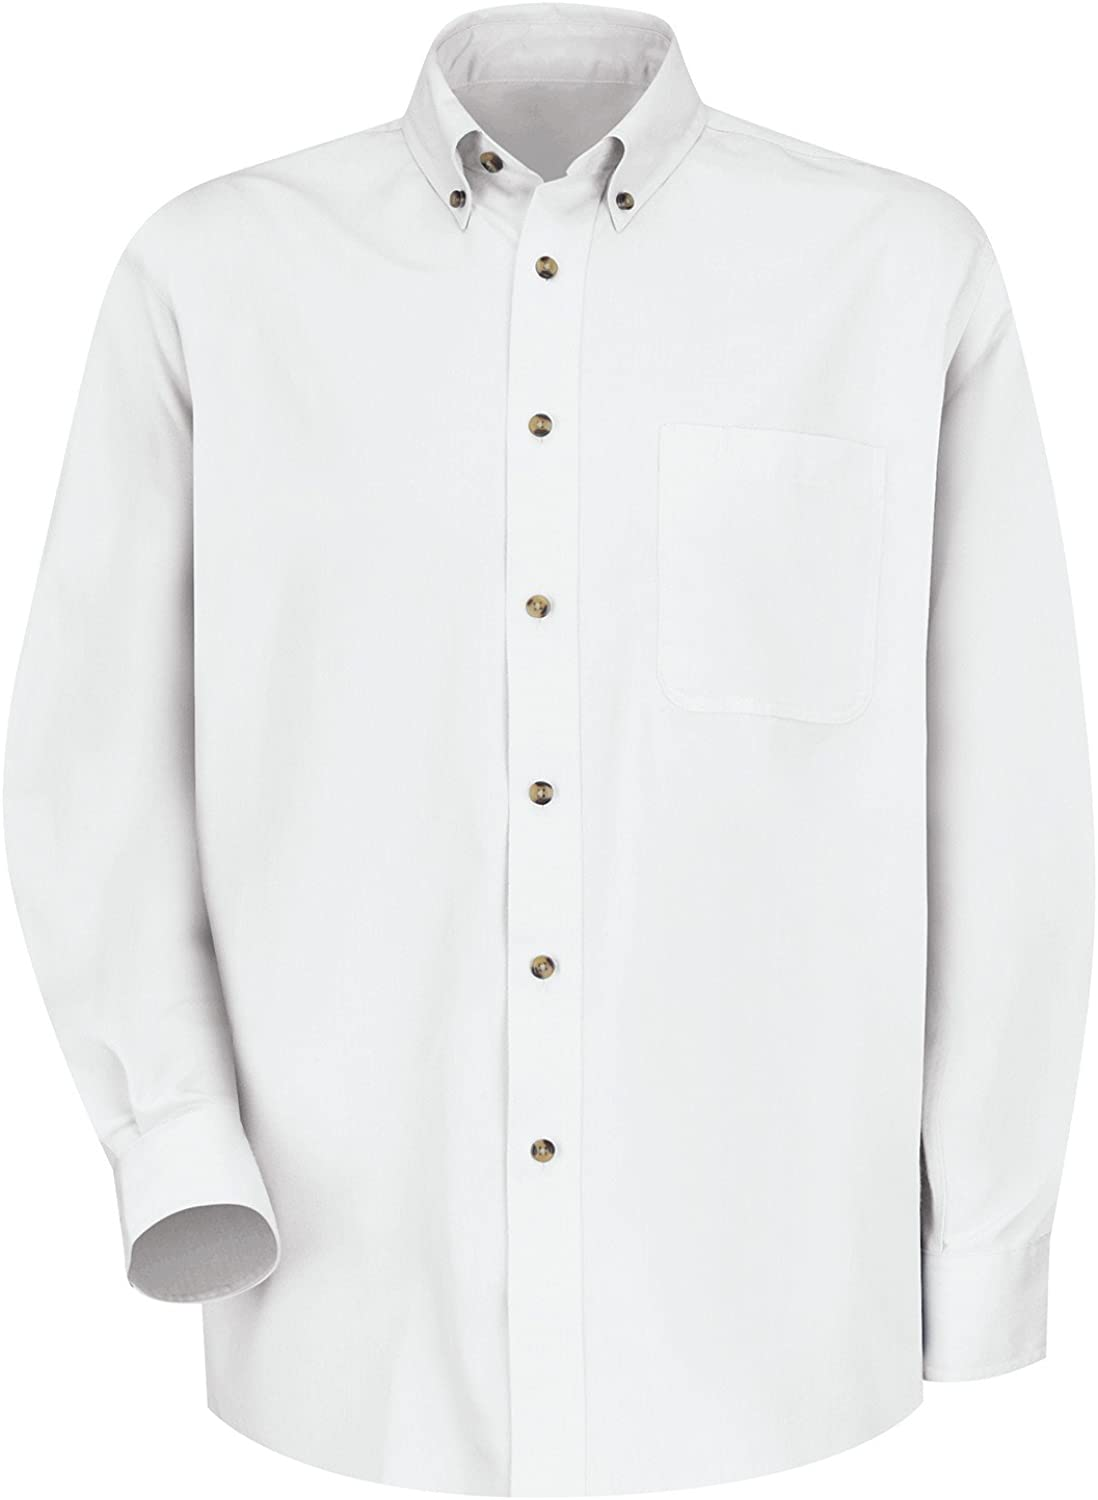 Big and Tall Premium All Cotton Twill Oxford Casual Shirt Long Sleeve